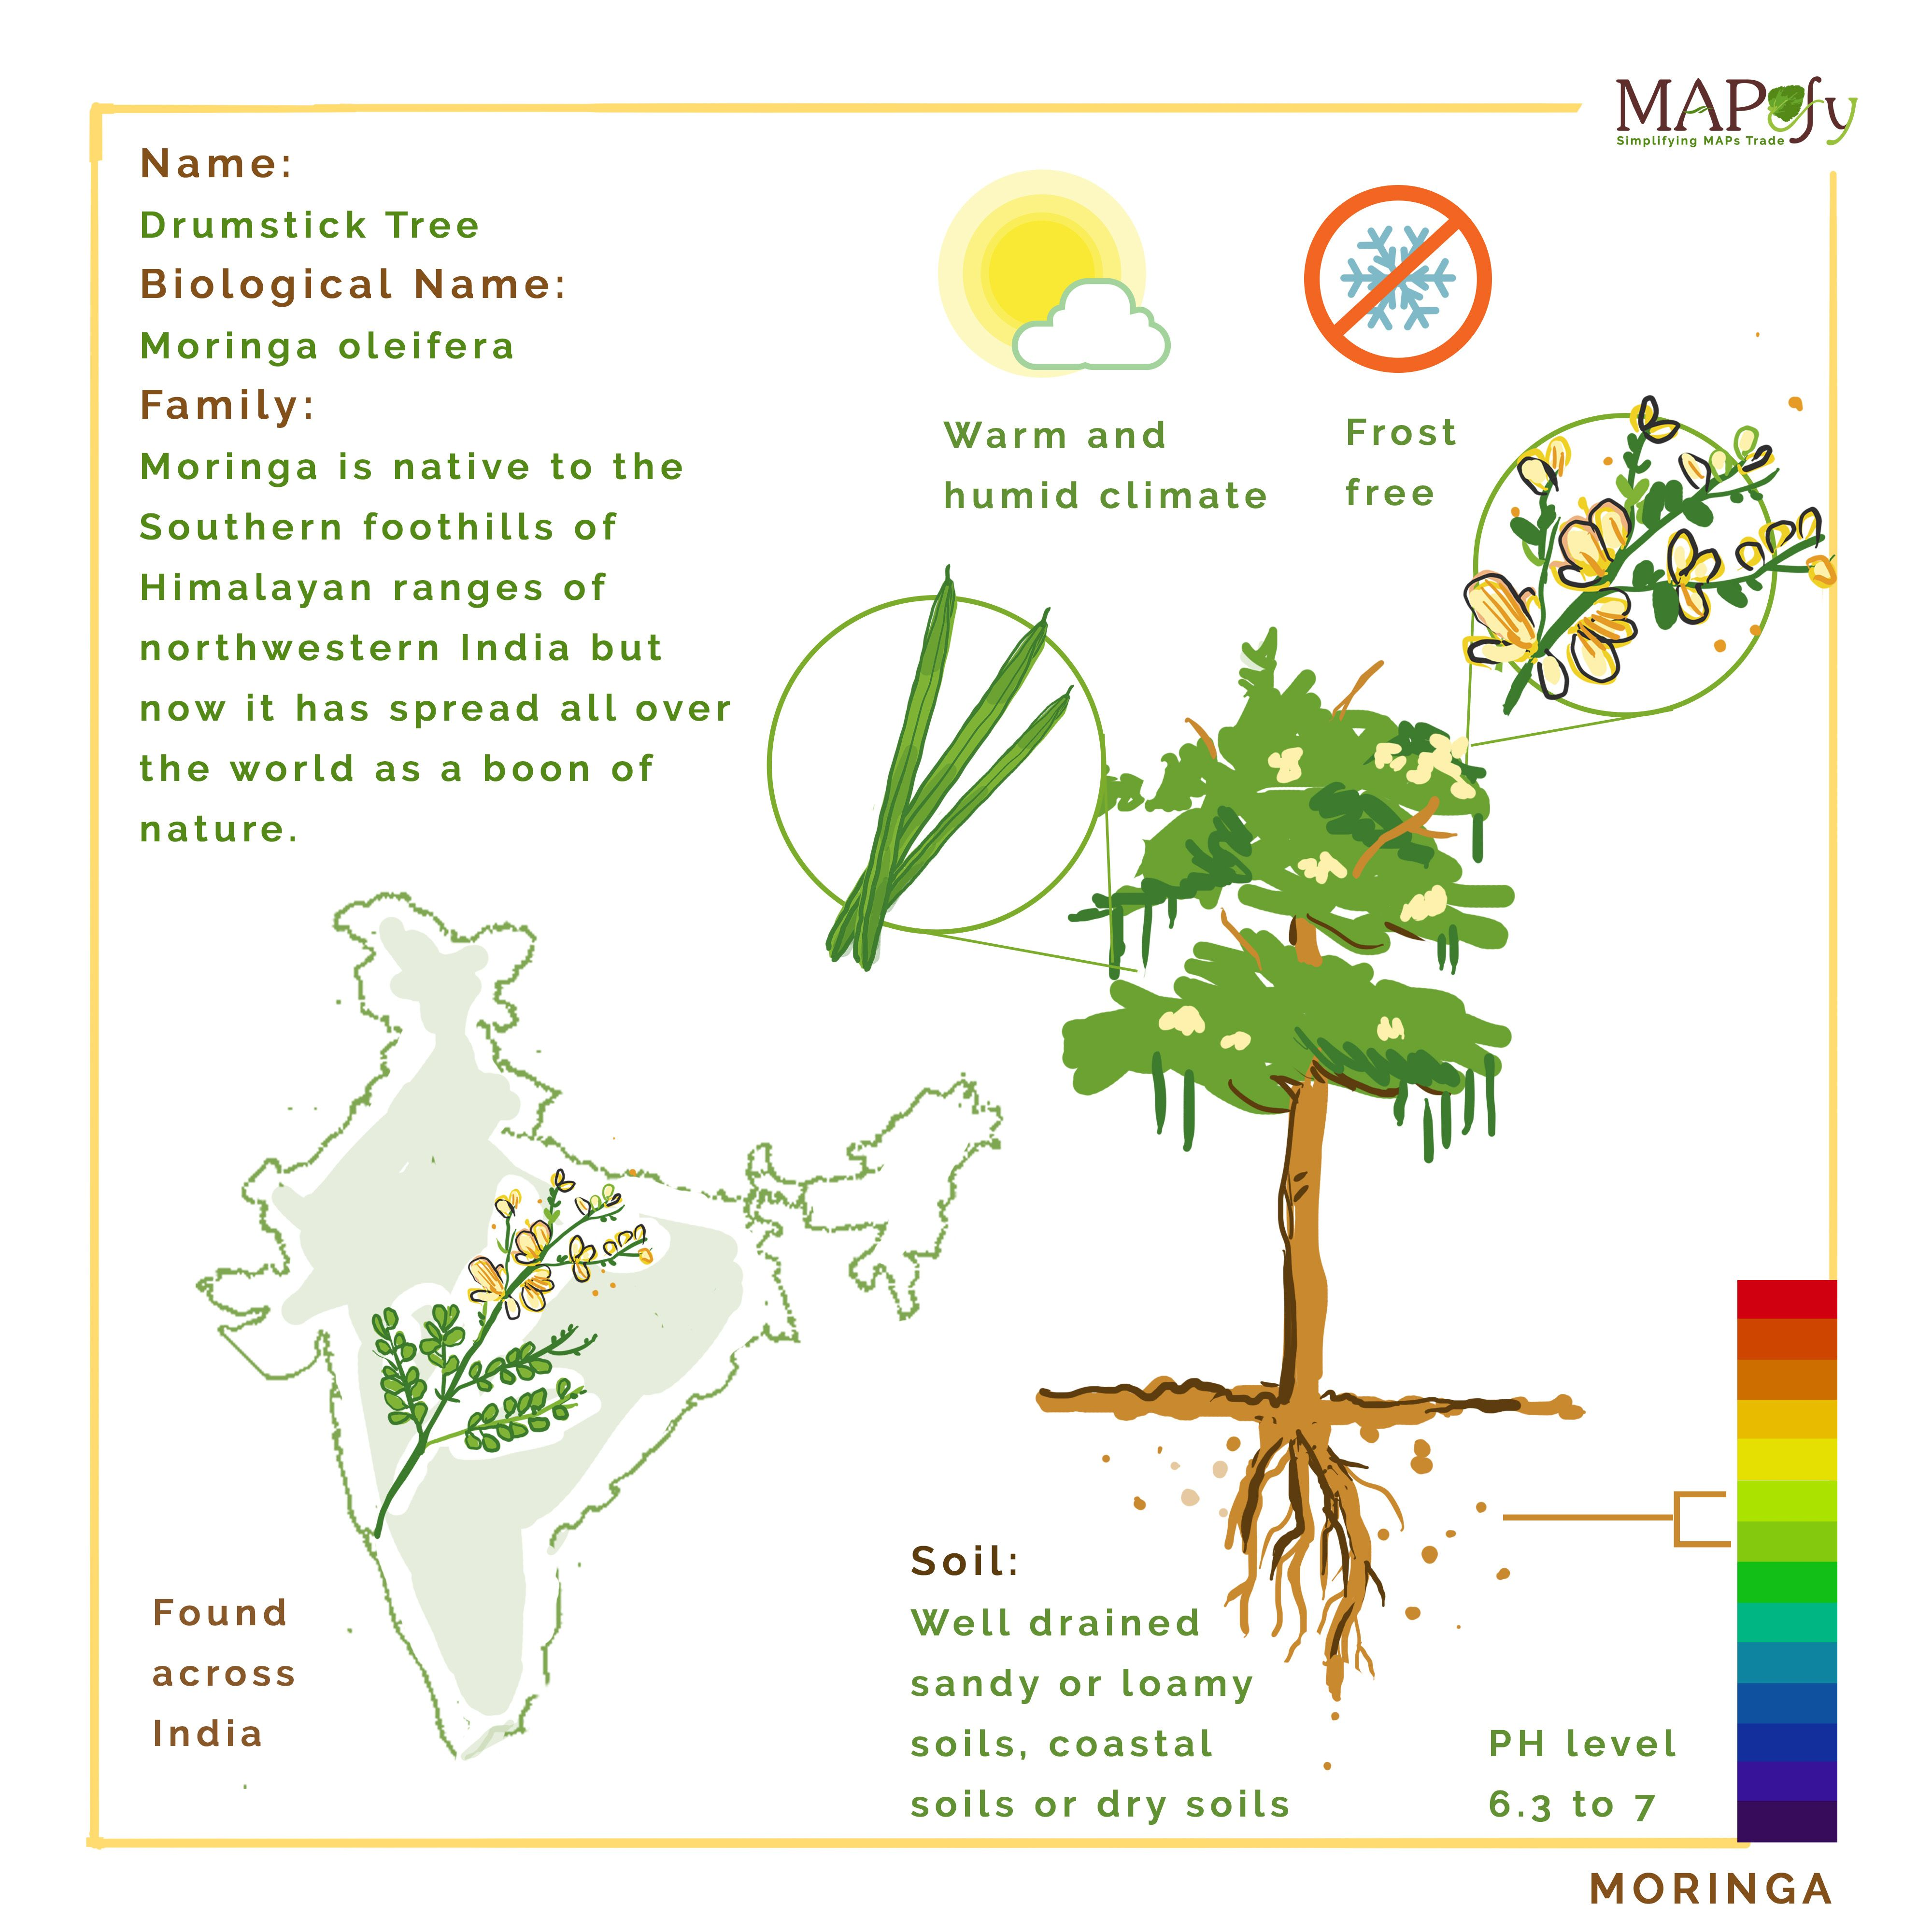 Didyouknow moringa are droughtresistant evergreen trees